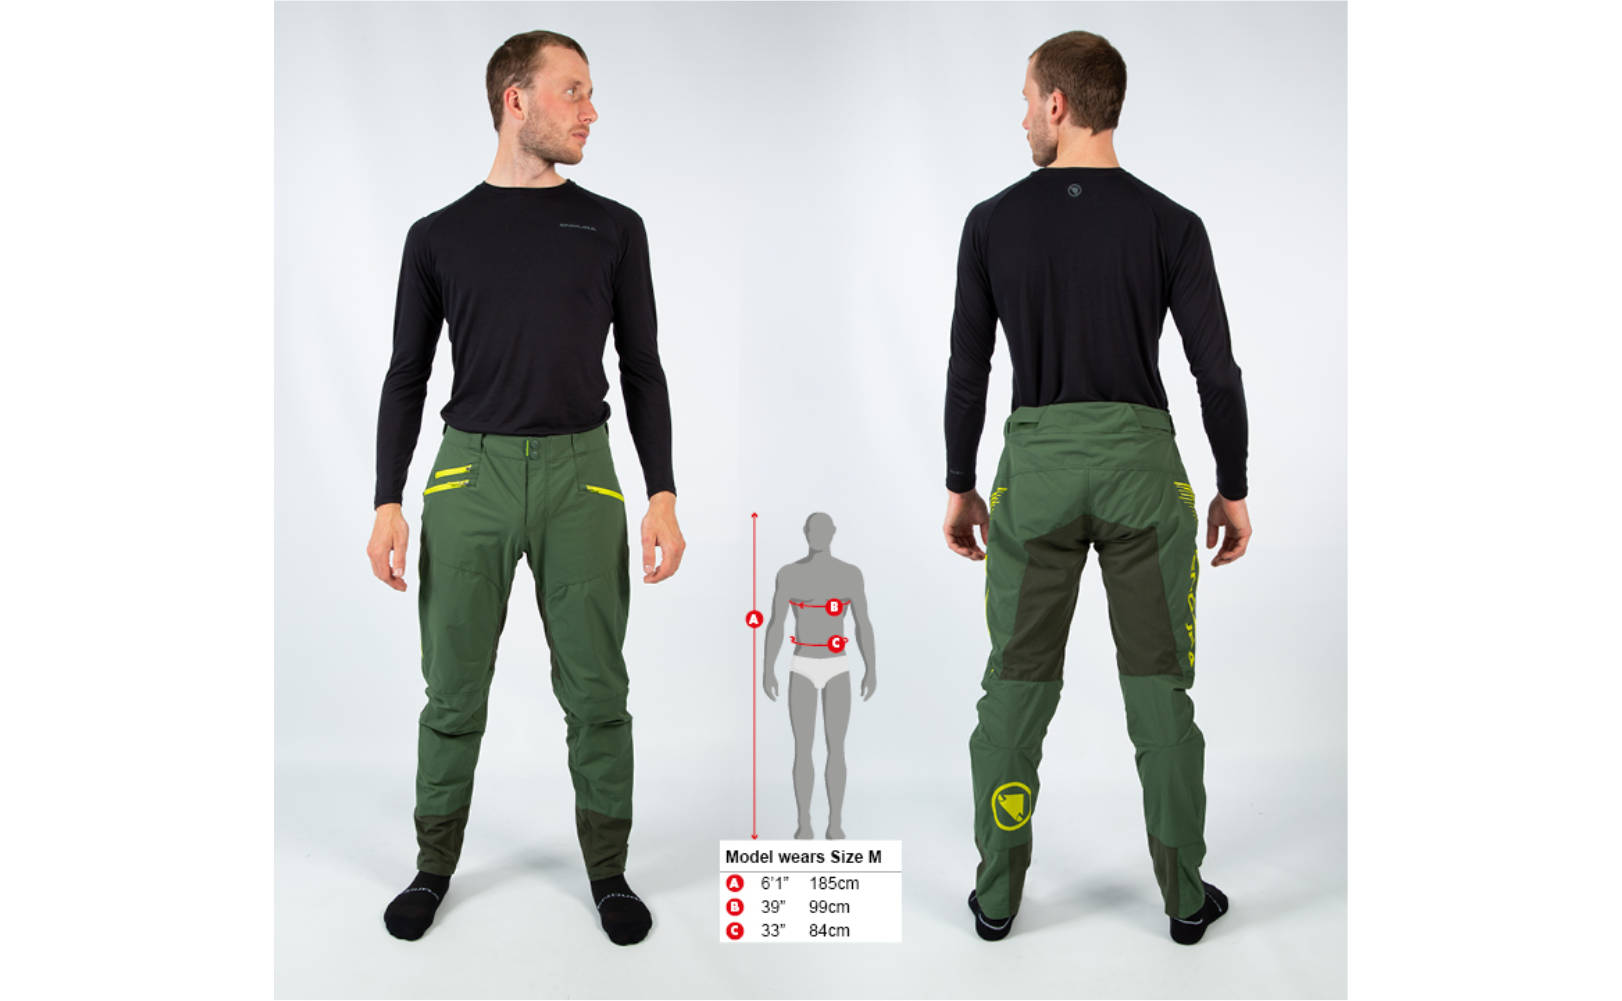 Endura SingleTrack II Trouser in Forest Green - Front and back, modelled